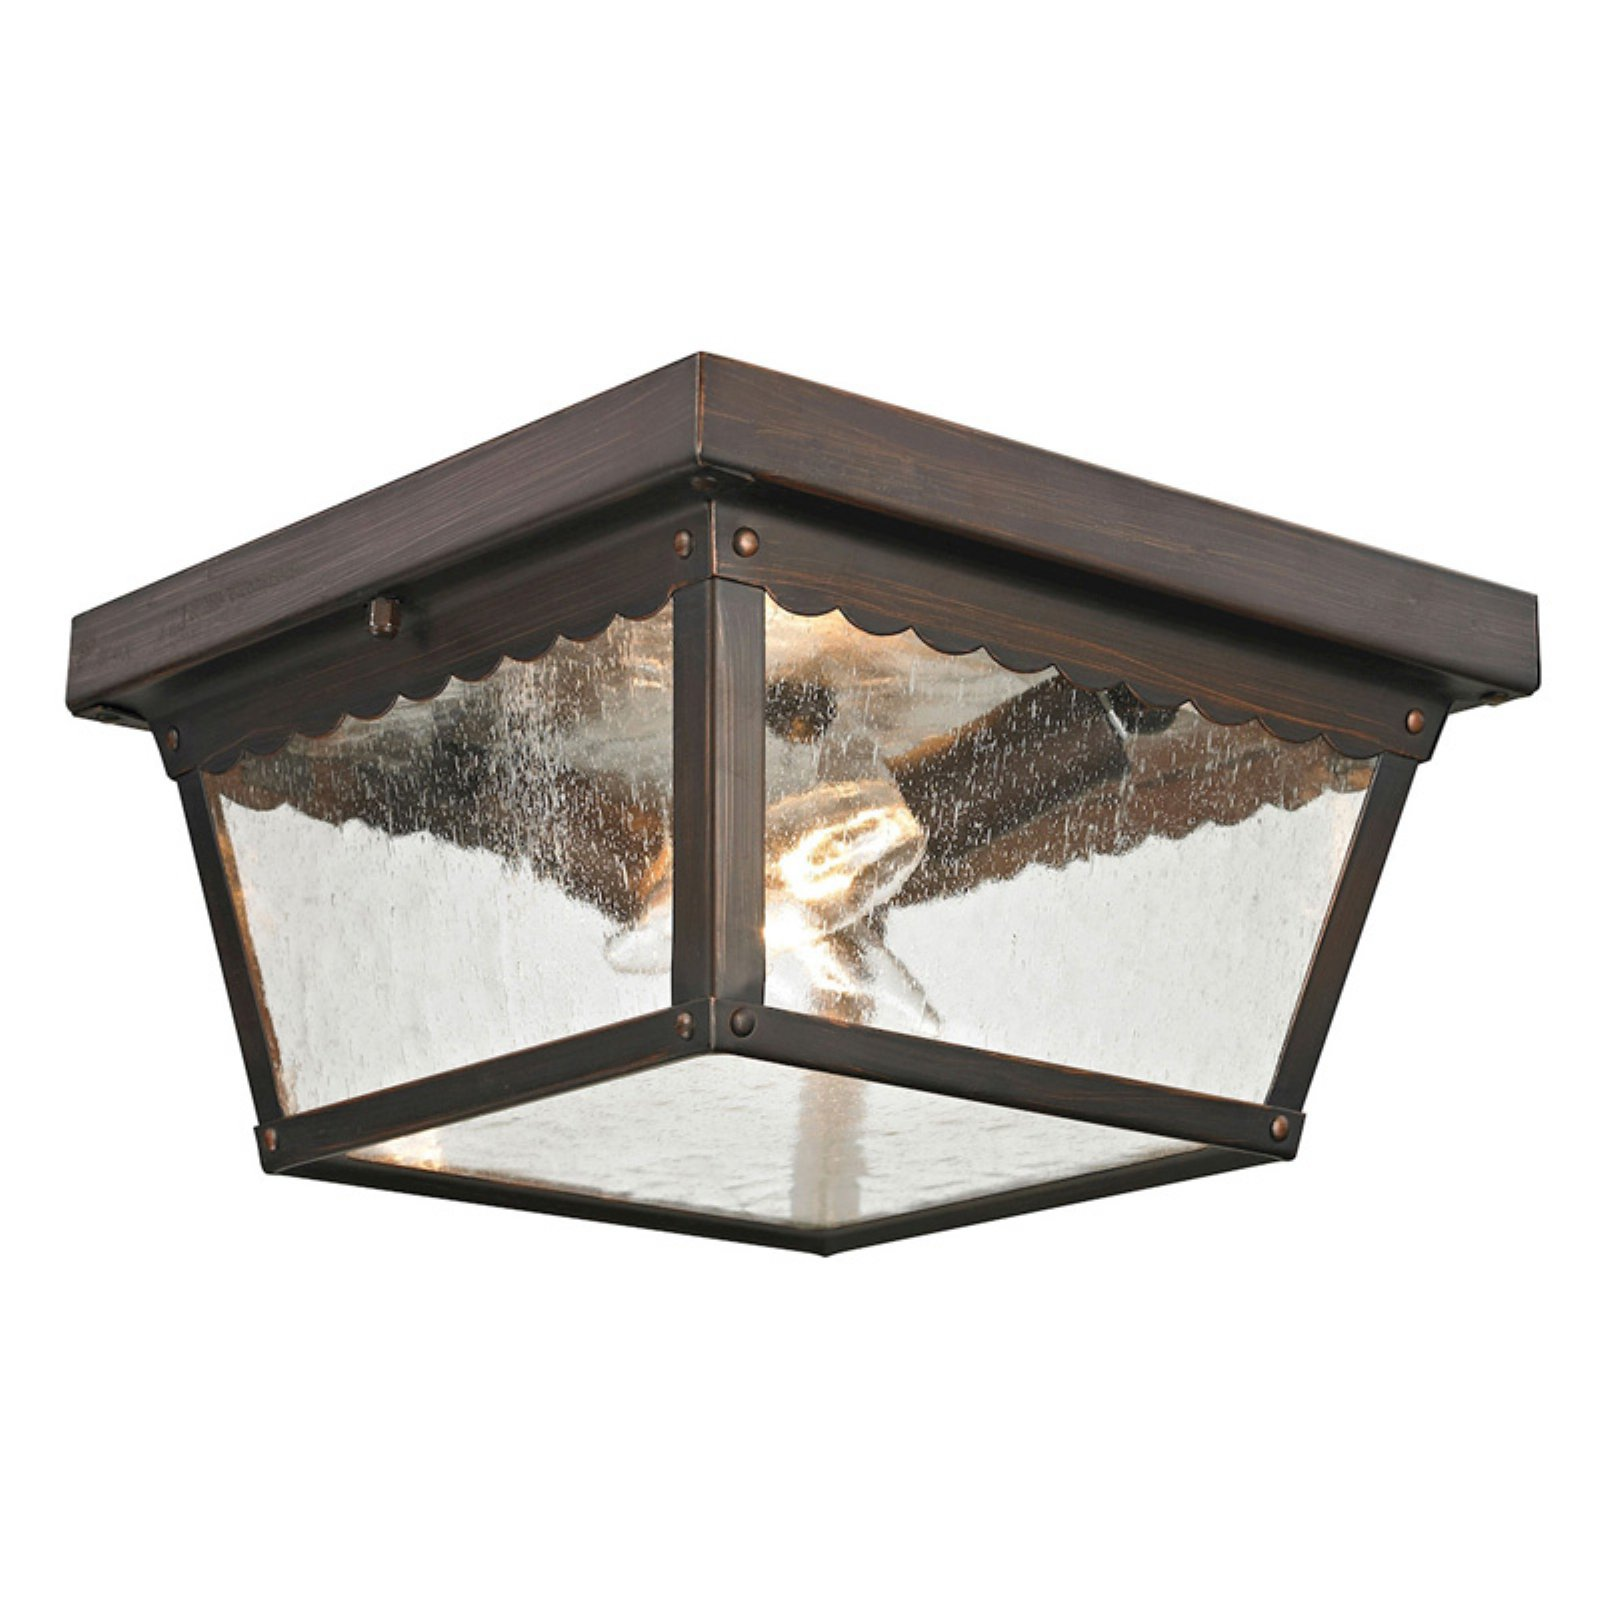 Thomas Lighting Springfield 2 Light Outdoor Flush Mount Ceiling Light by CornerStone